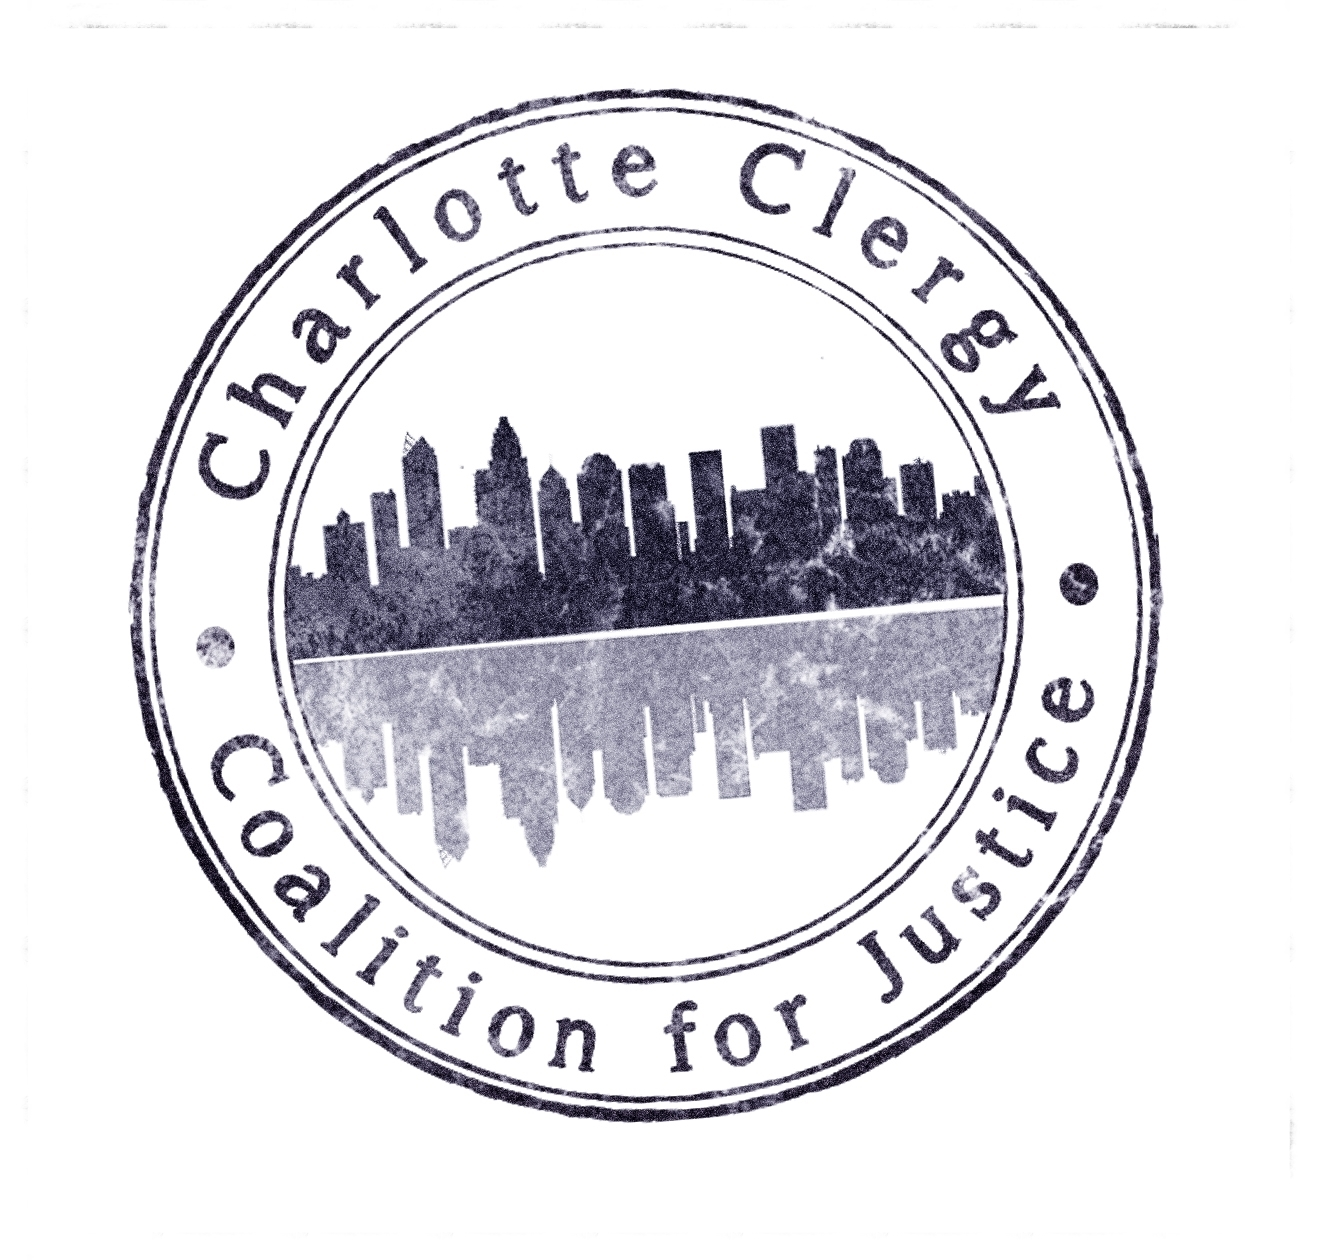 Charlotte Clergy Coalition for Justice